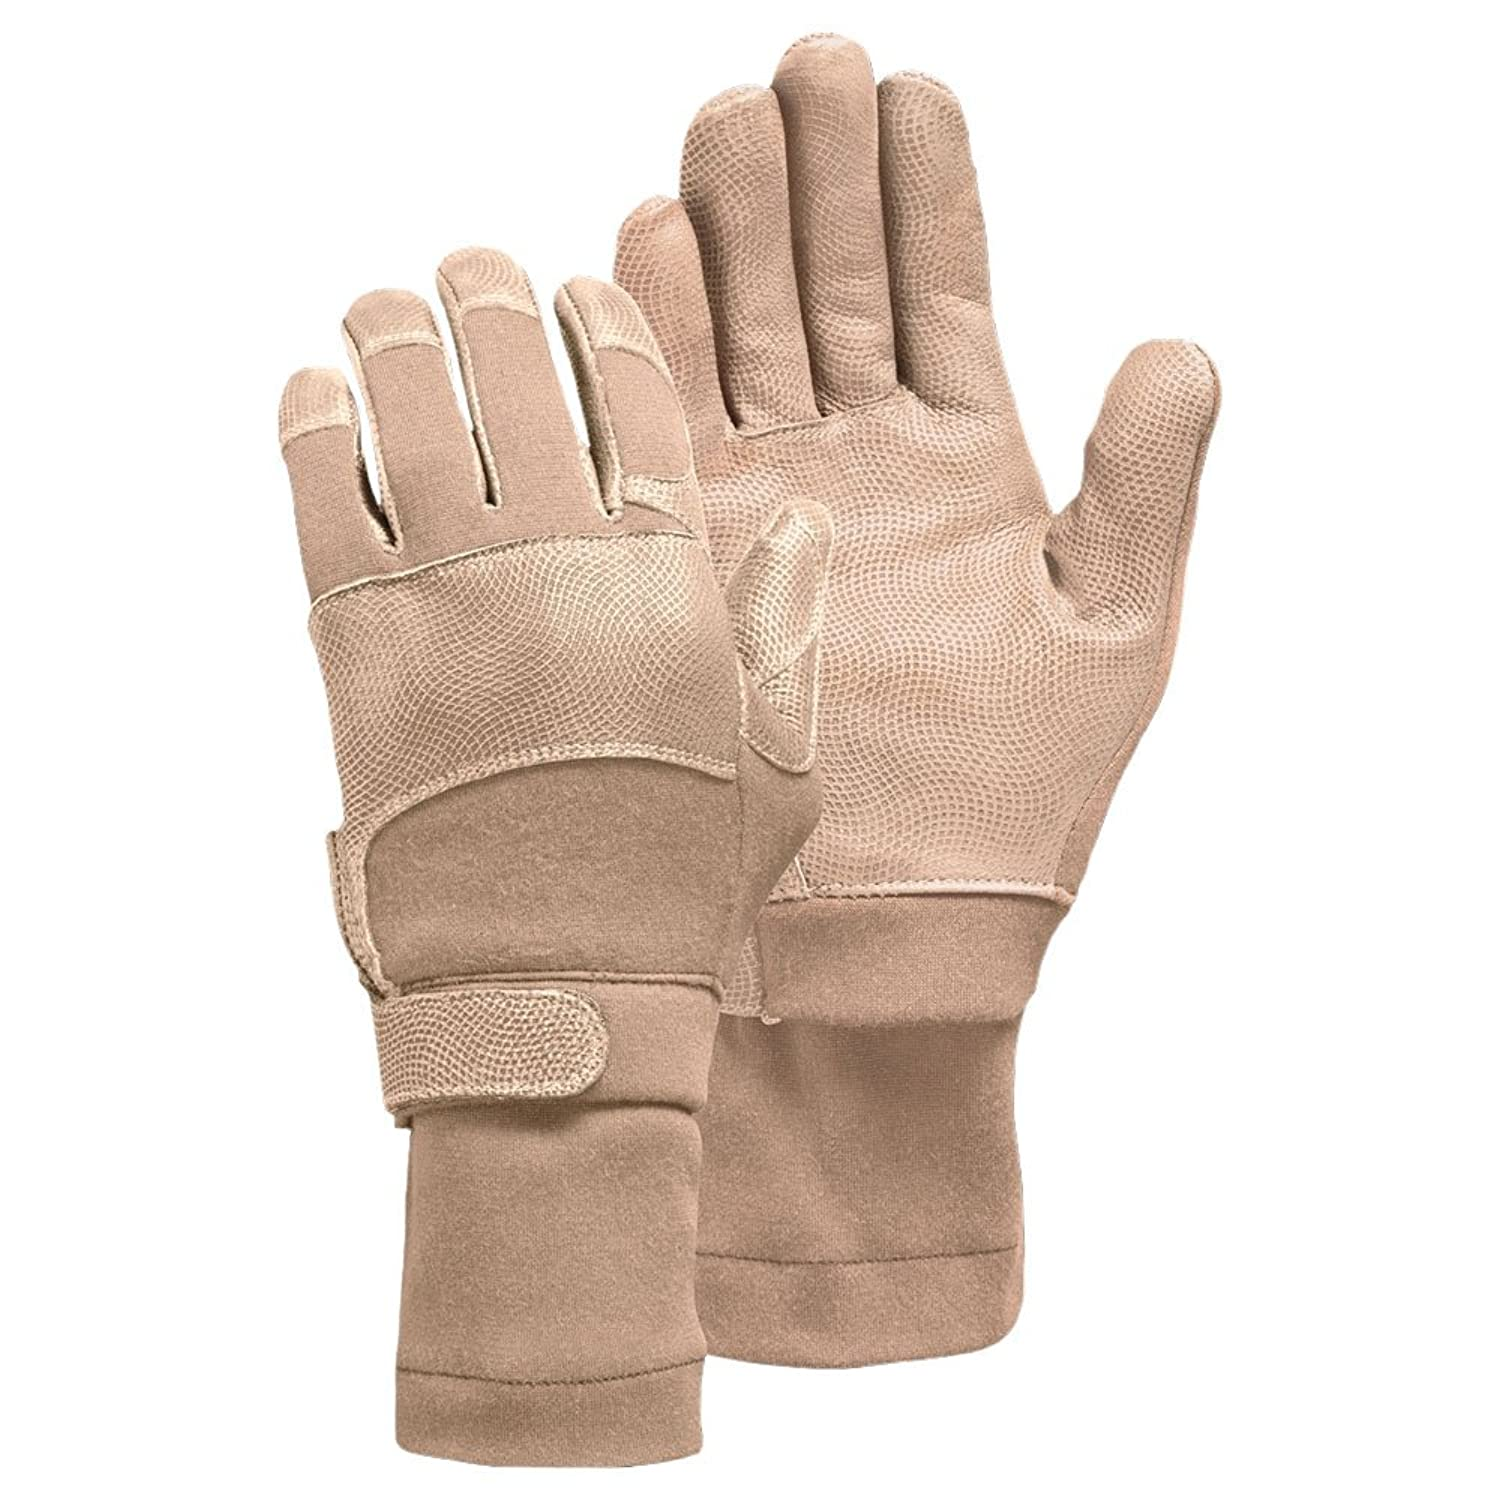 Black leather work gloves nsn - Amazon Com Camelbak Max Grip Nt Gloves Desert Tan M Office Products